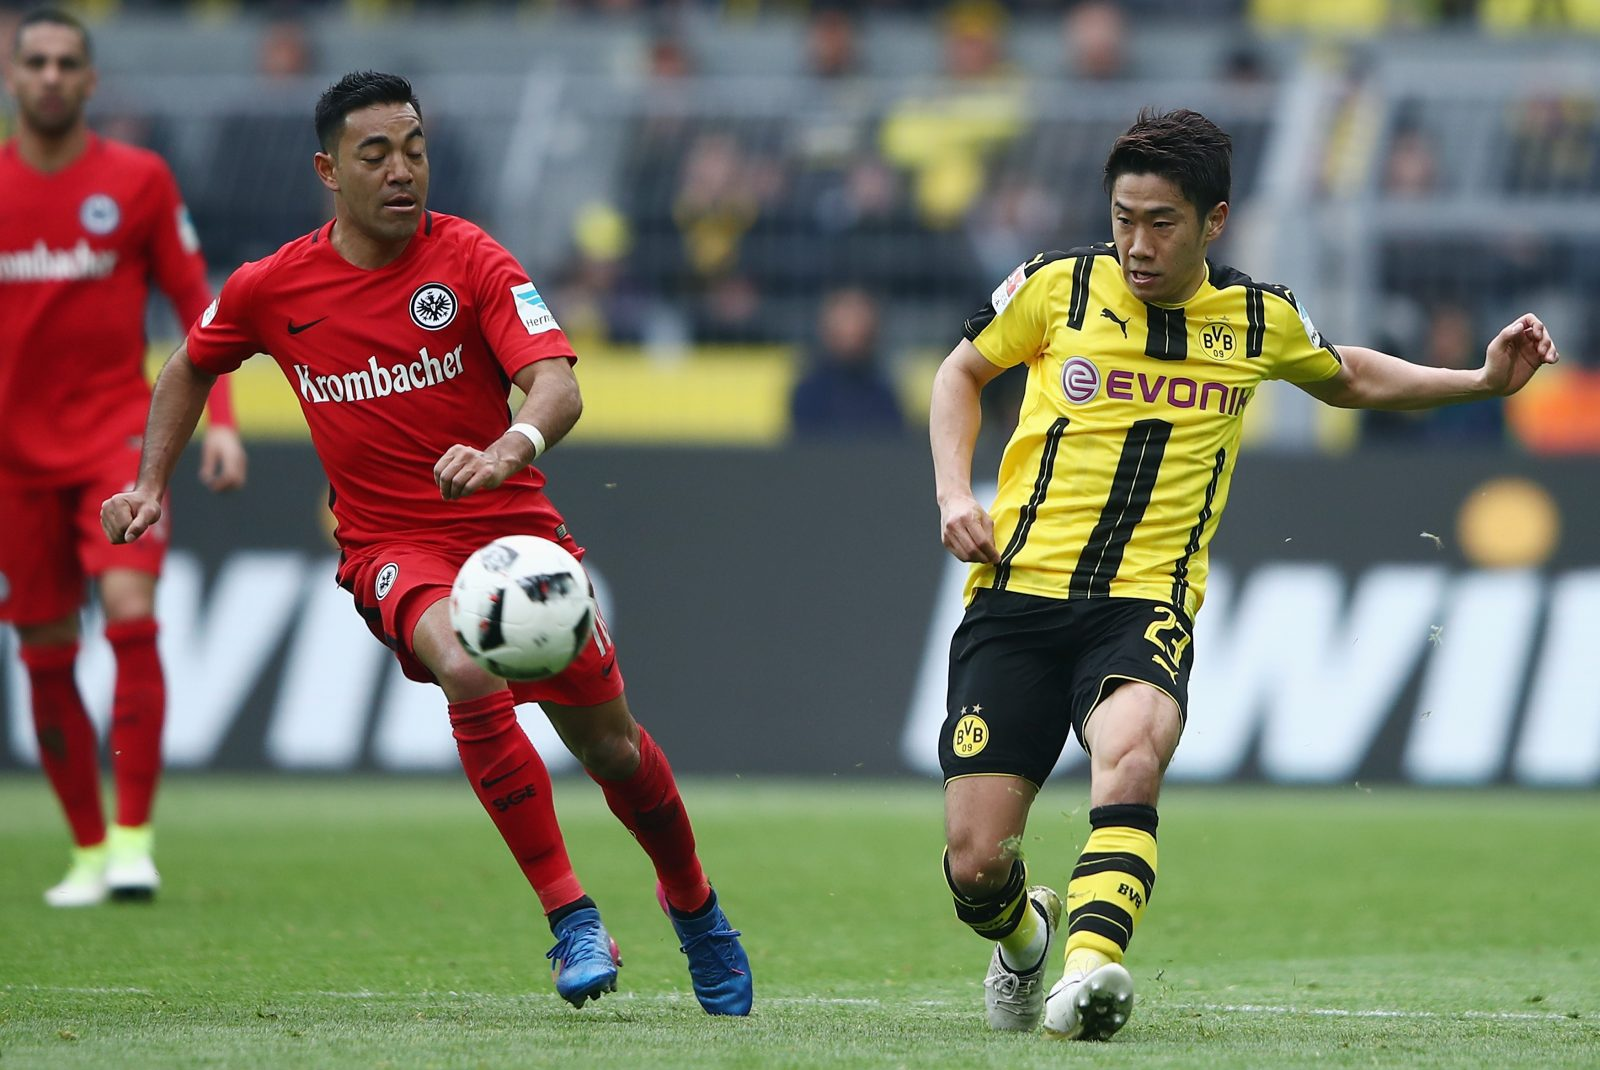 DORTMUND, GERMANY - APRIL 15: Shinji Kagawa (R) of Dortmund is challenged by Marco Fabian of Frankfurt during the Bundesliga match between Borussia Dortmund and Eintracht Frankfurt at Signal Iduna Park on April 15, 2017 in Dortmund, Germany. (Photo by Alex Grimm/Bongarts/Getty Images)